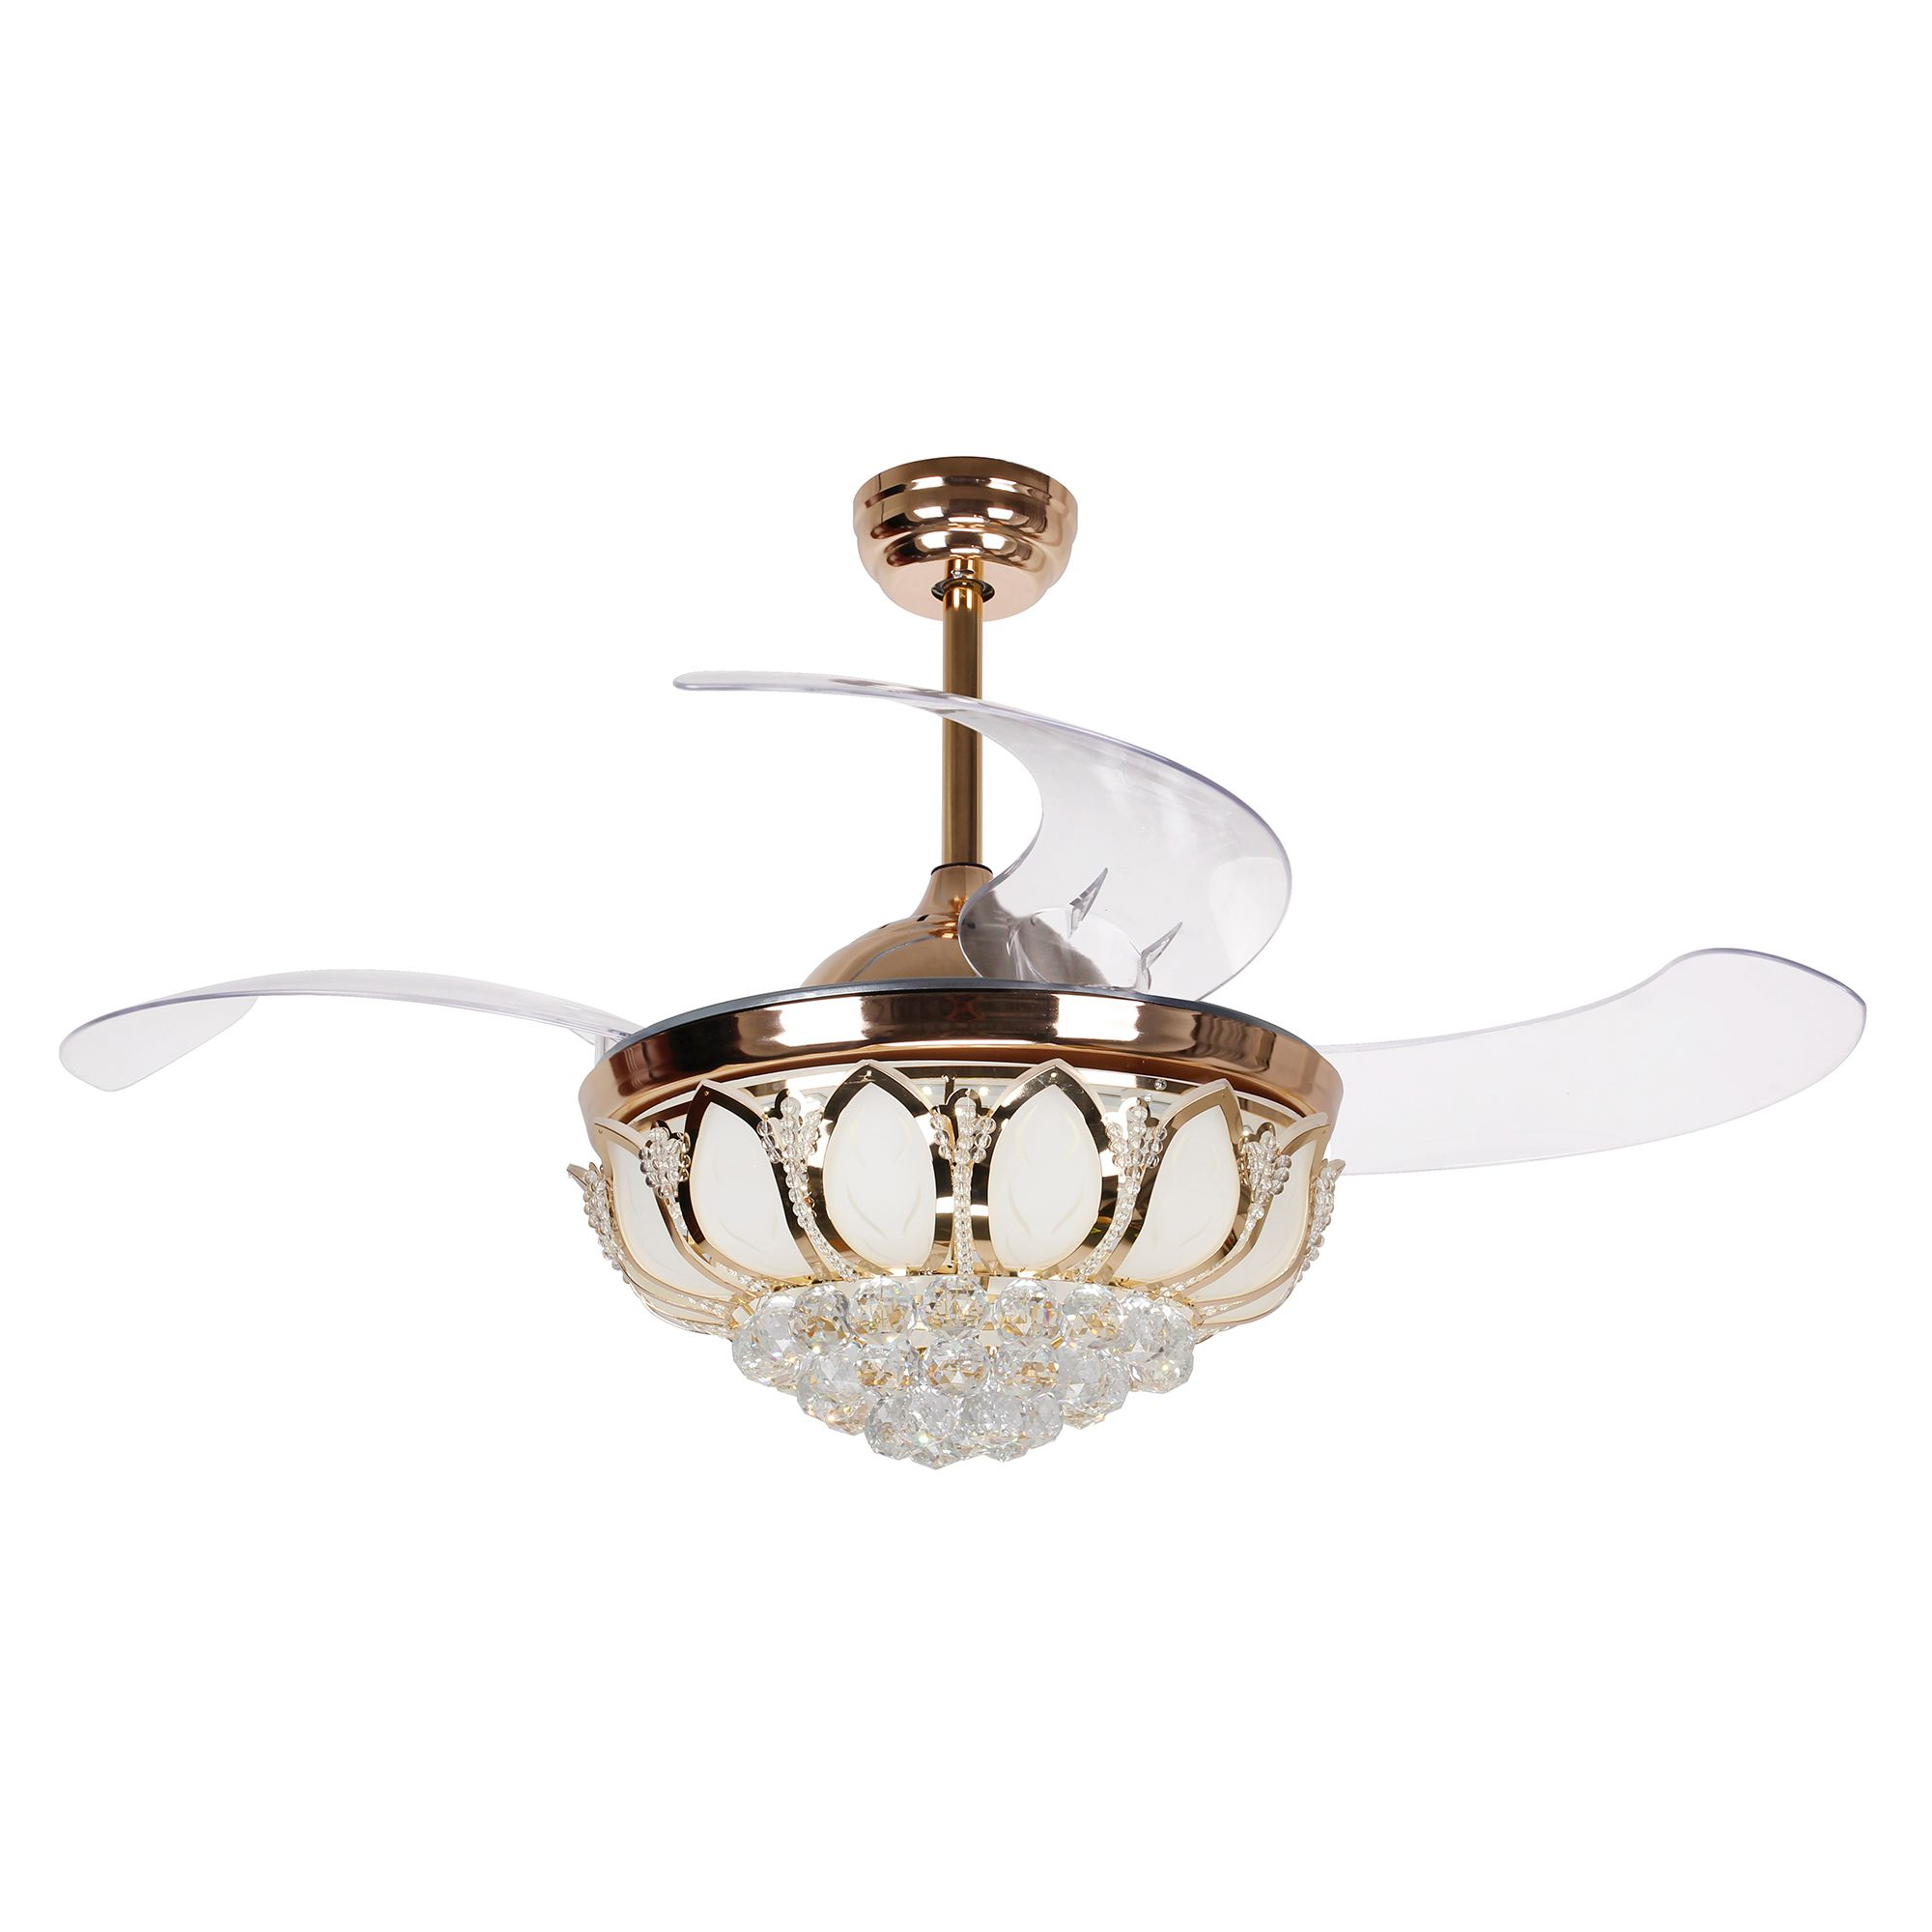 Crystal LED Ceiling Fan With Retractable Blades, Gold · Parrot Uncle ...